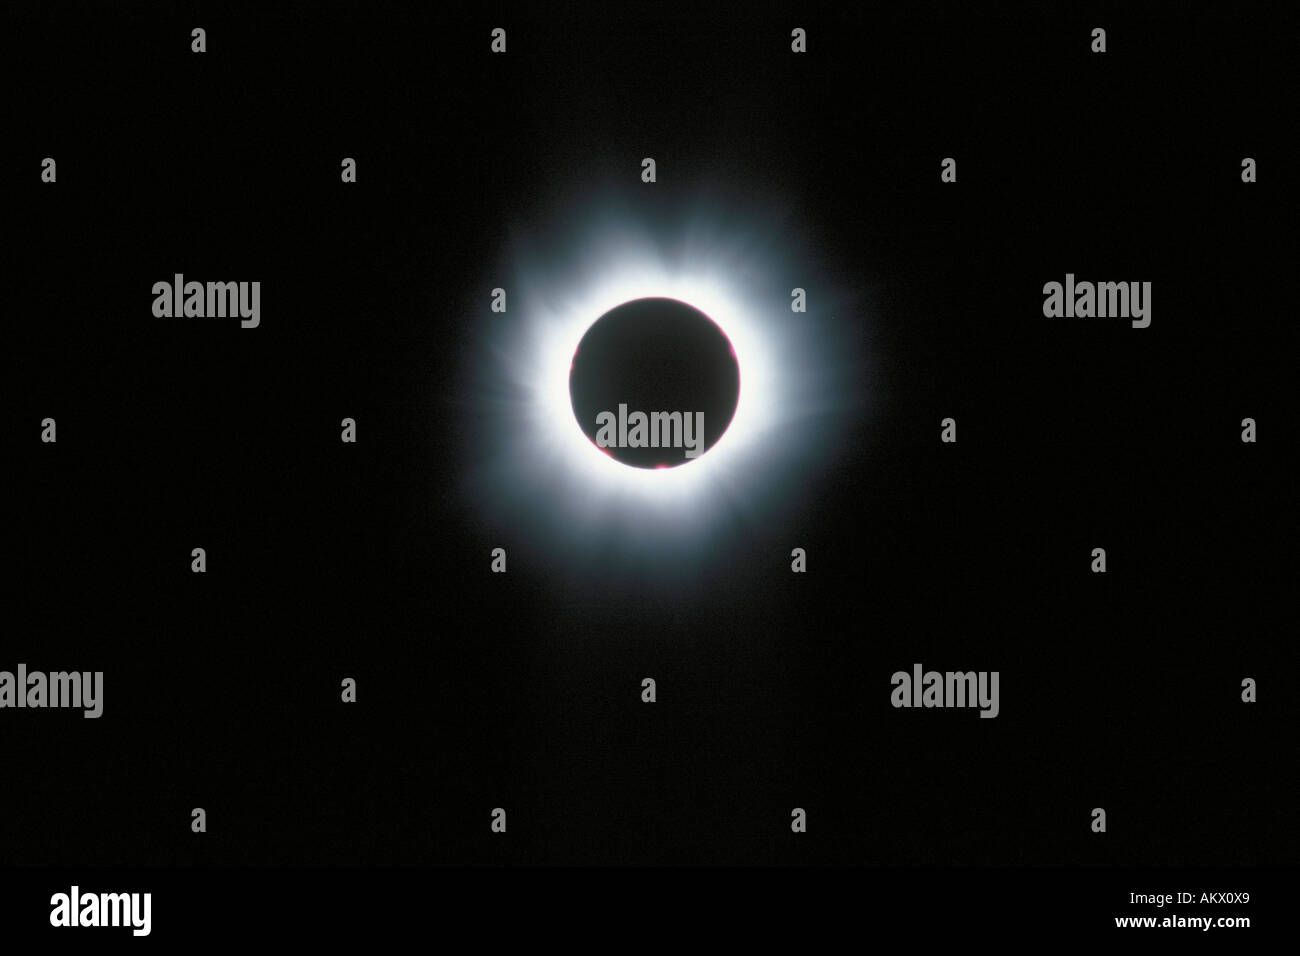 Eclipse of the sun, 11.08.1999 - Stock Image